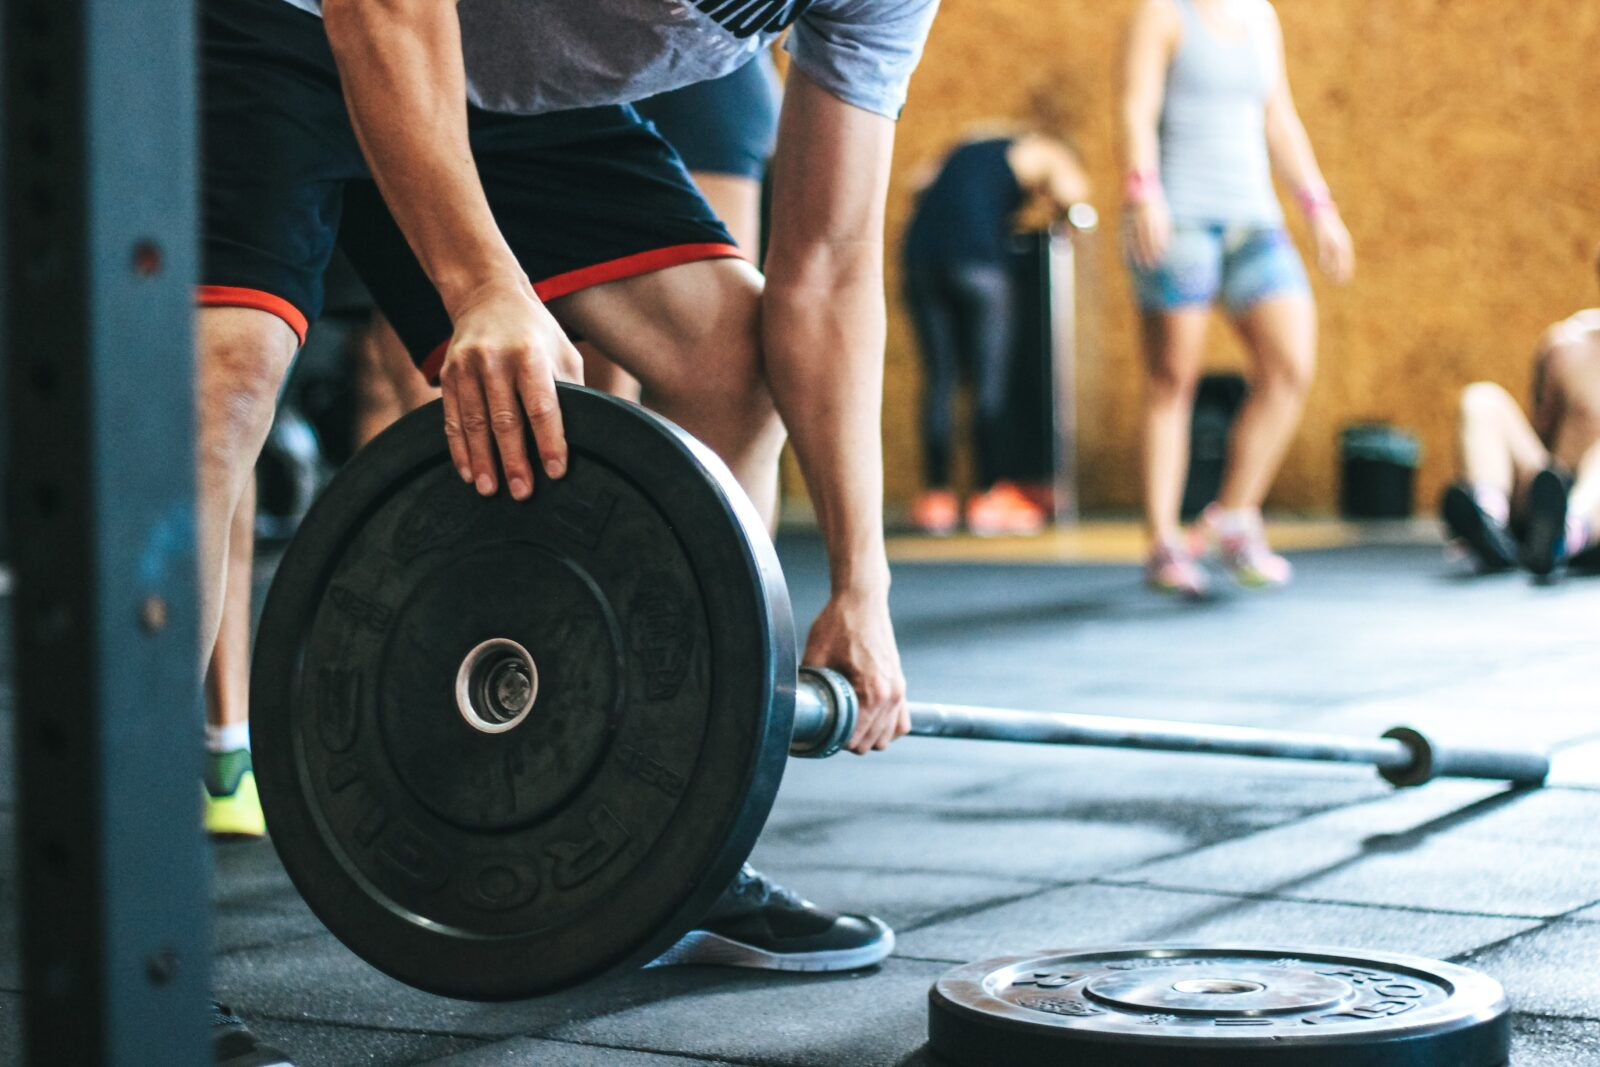 Can You Sue if You Were Injured at Your Gym?